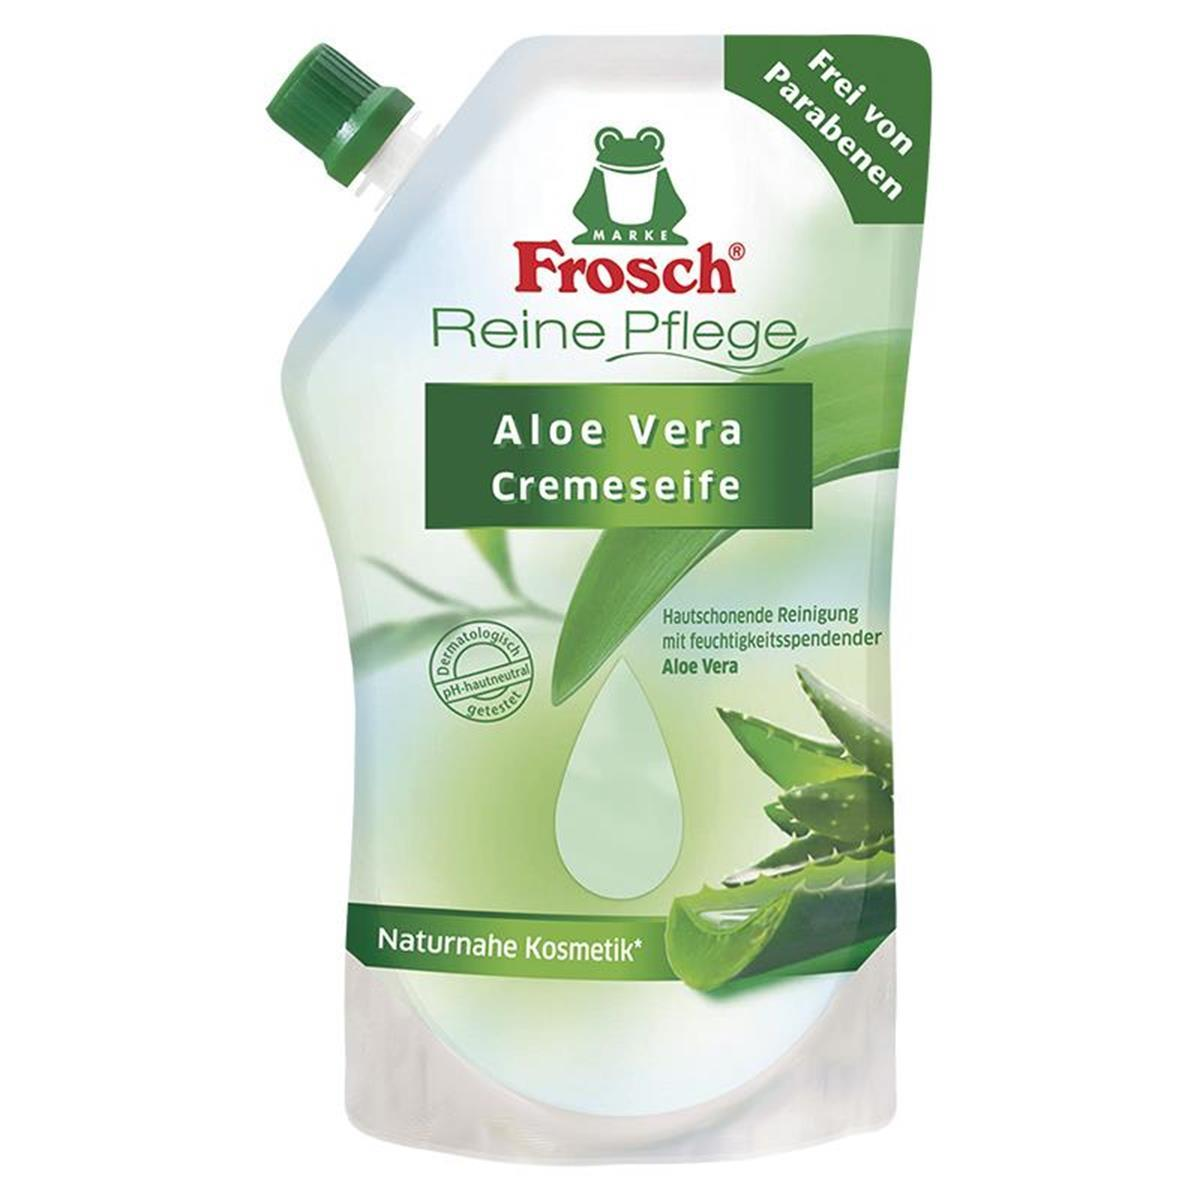 frosch reine pflege aloe vera cremeseife 500 ml. Black Bedroom Furniture Sets. Home Design Ideas